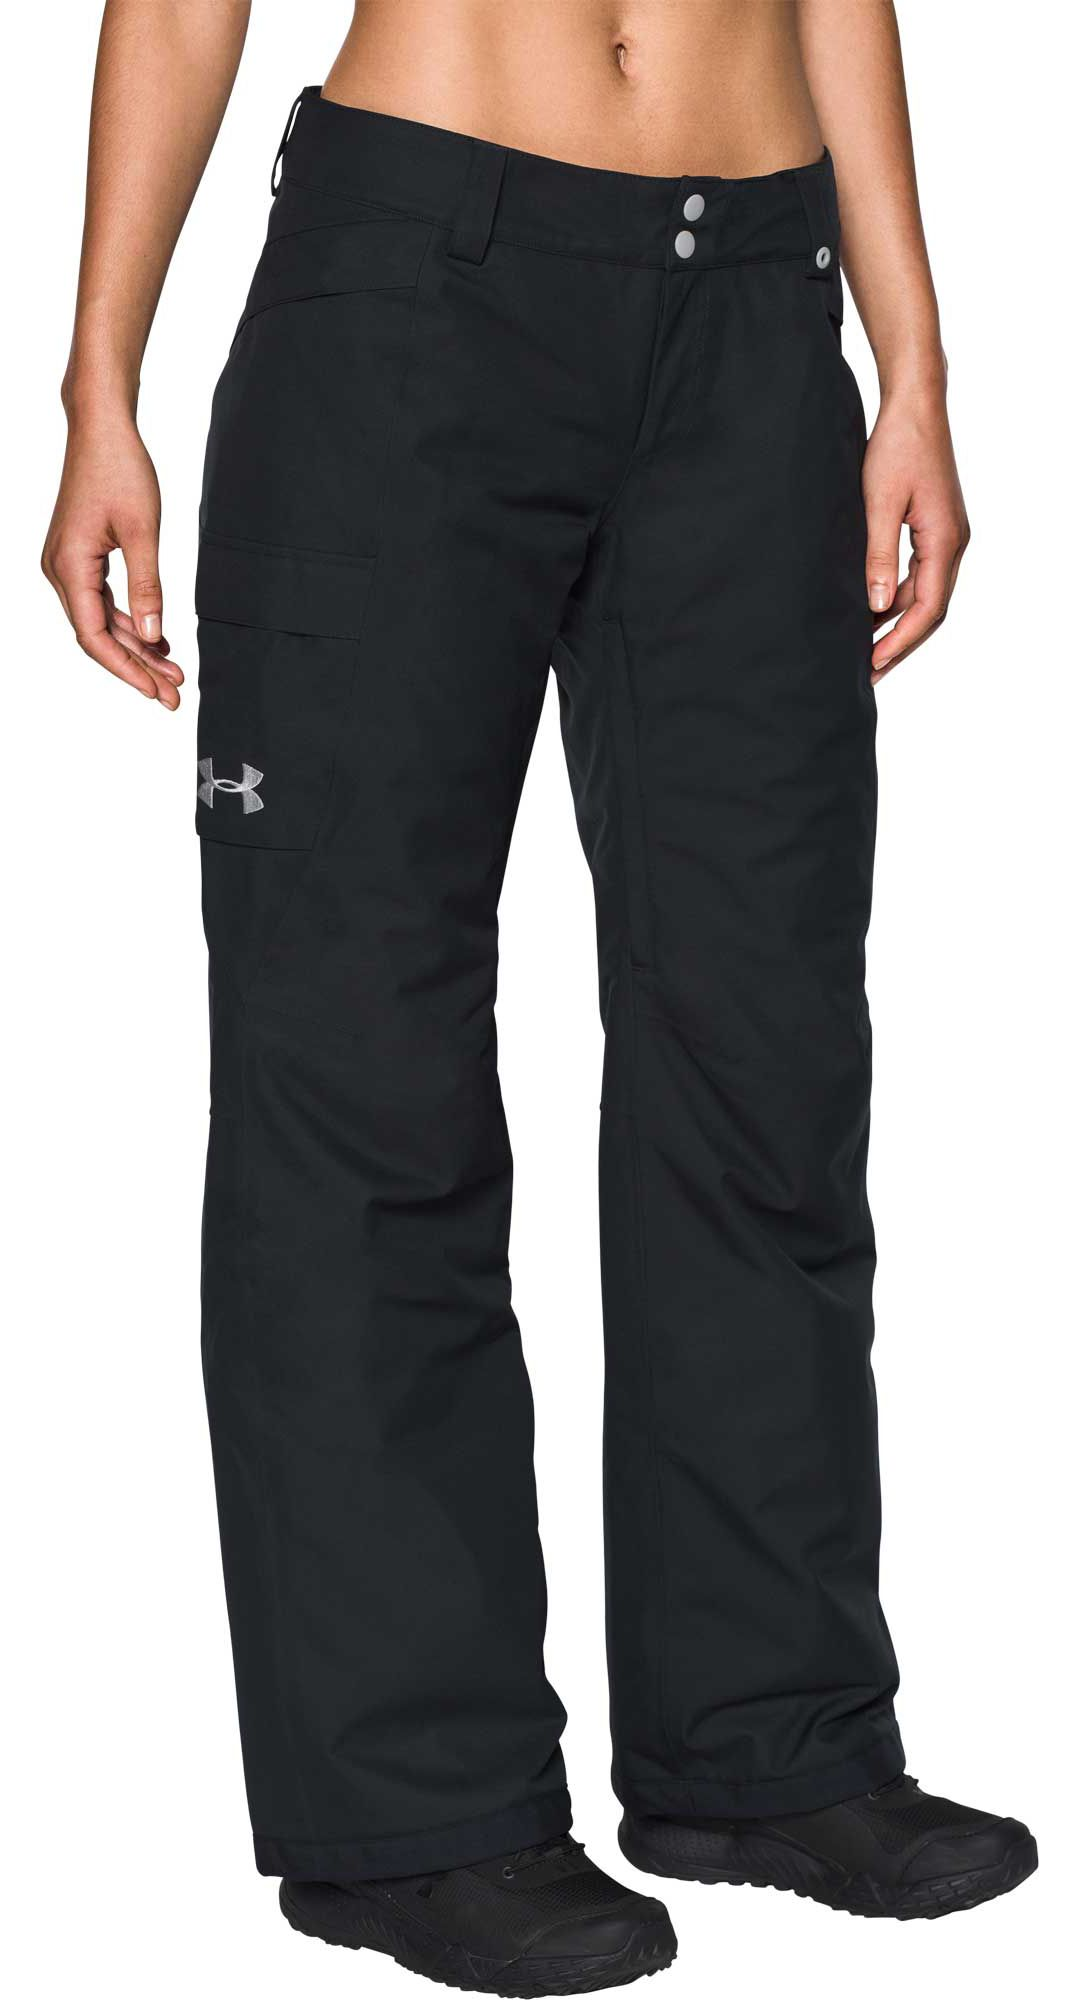 18b02cb95 Under Armour Women's ColdGear Infrared Chutes Insulated Pants.  noImageFound. Previous. 1